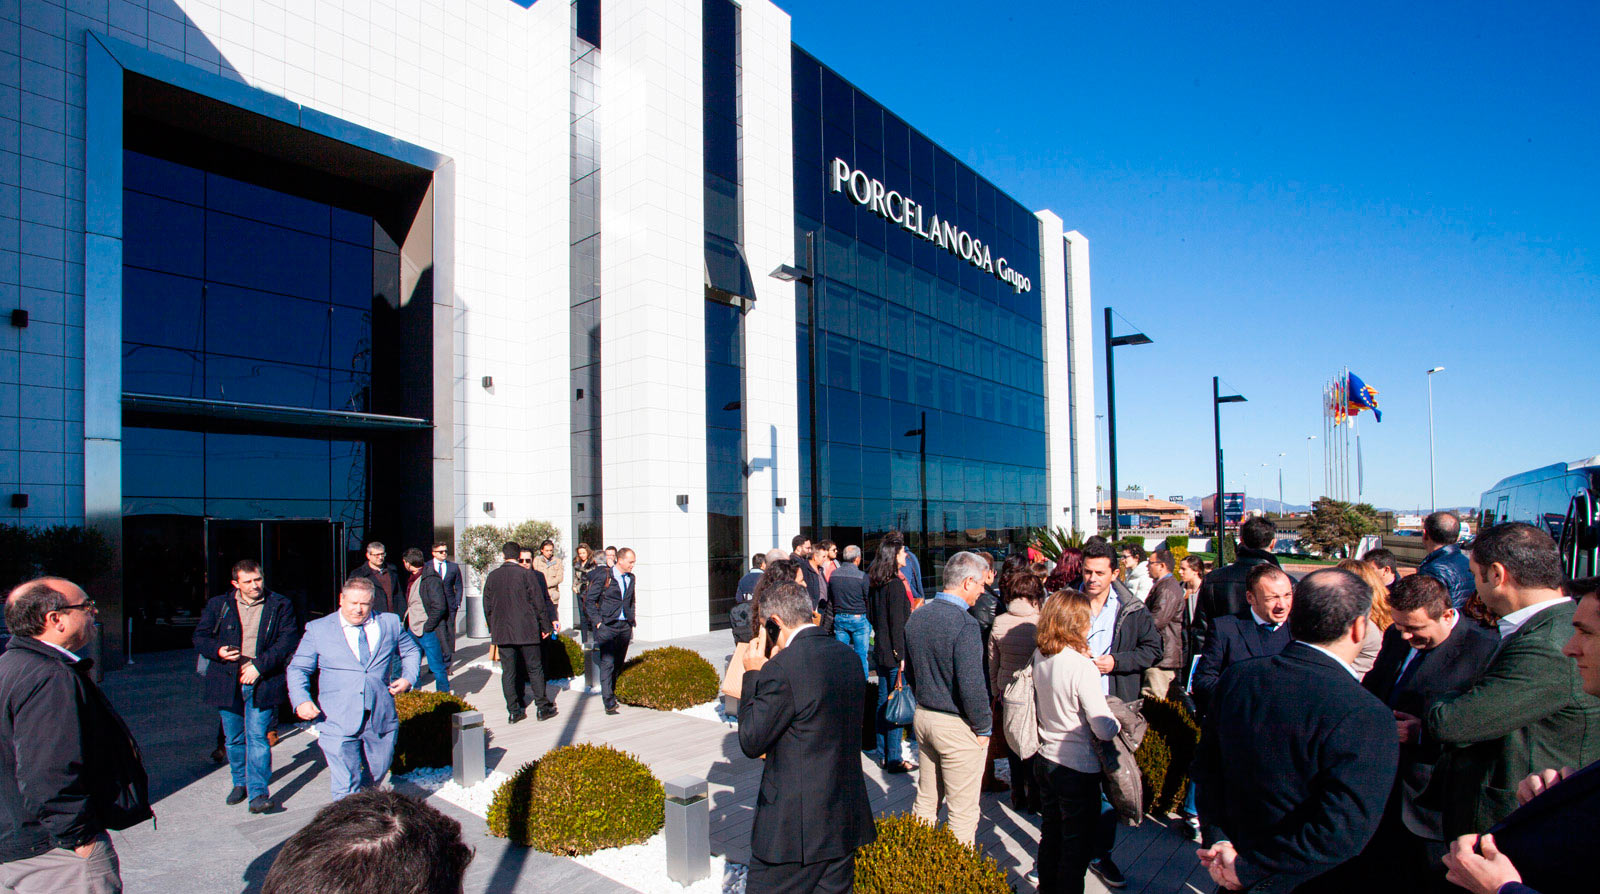 Le groupe PORCELANOSA conclut son XXVIe salon international avec plus de 12 000 visiteurs